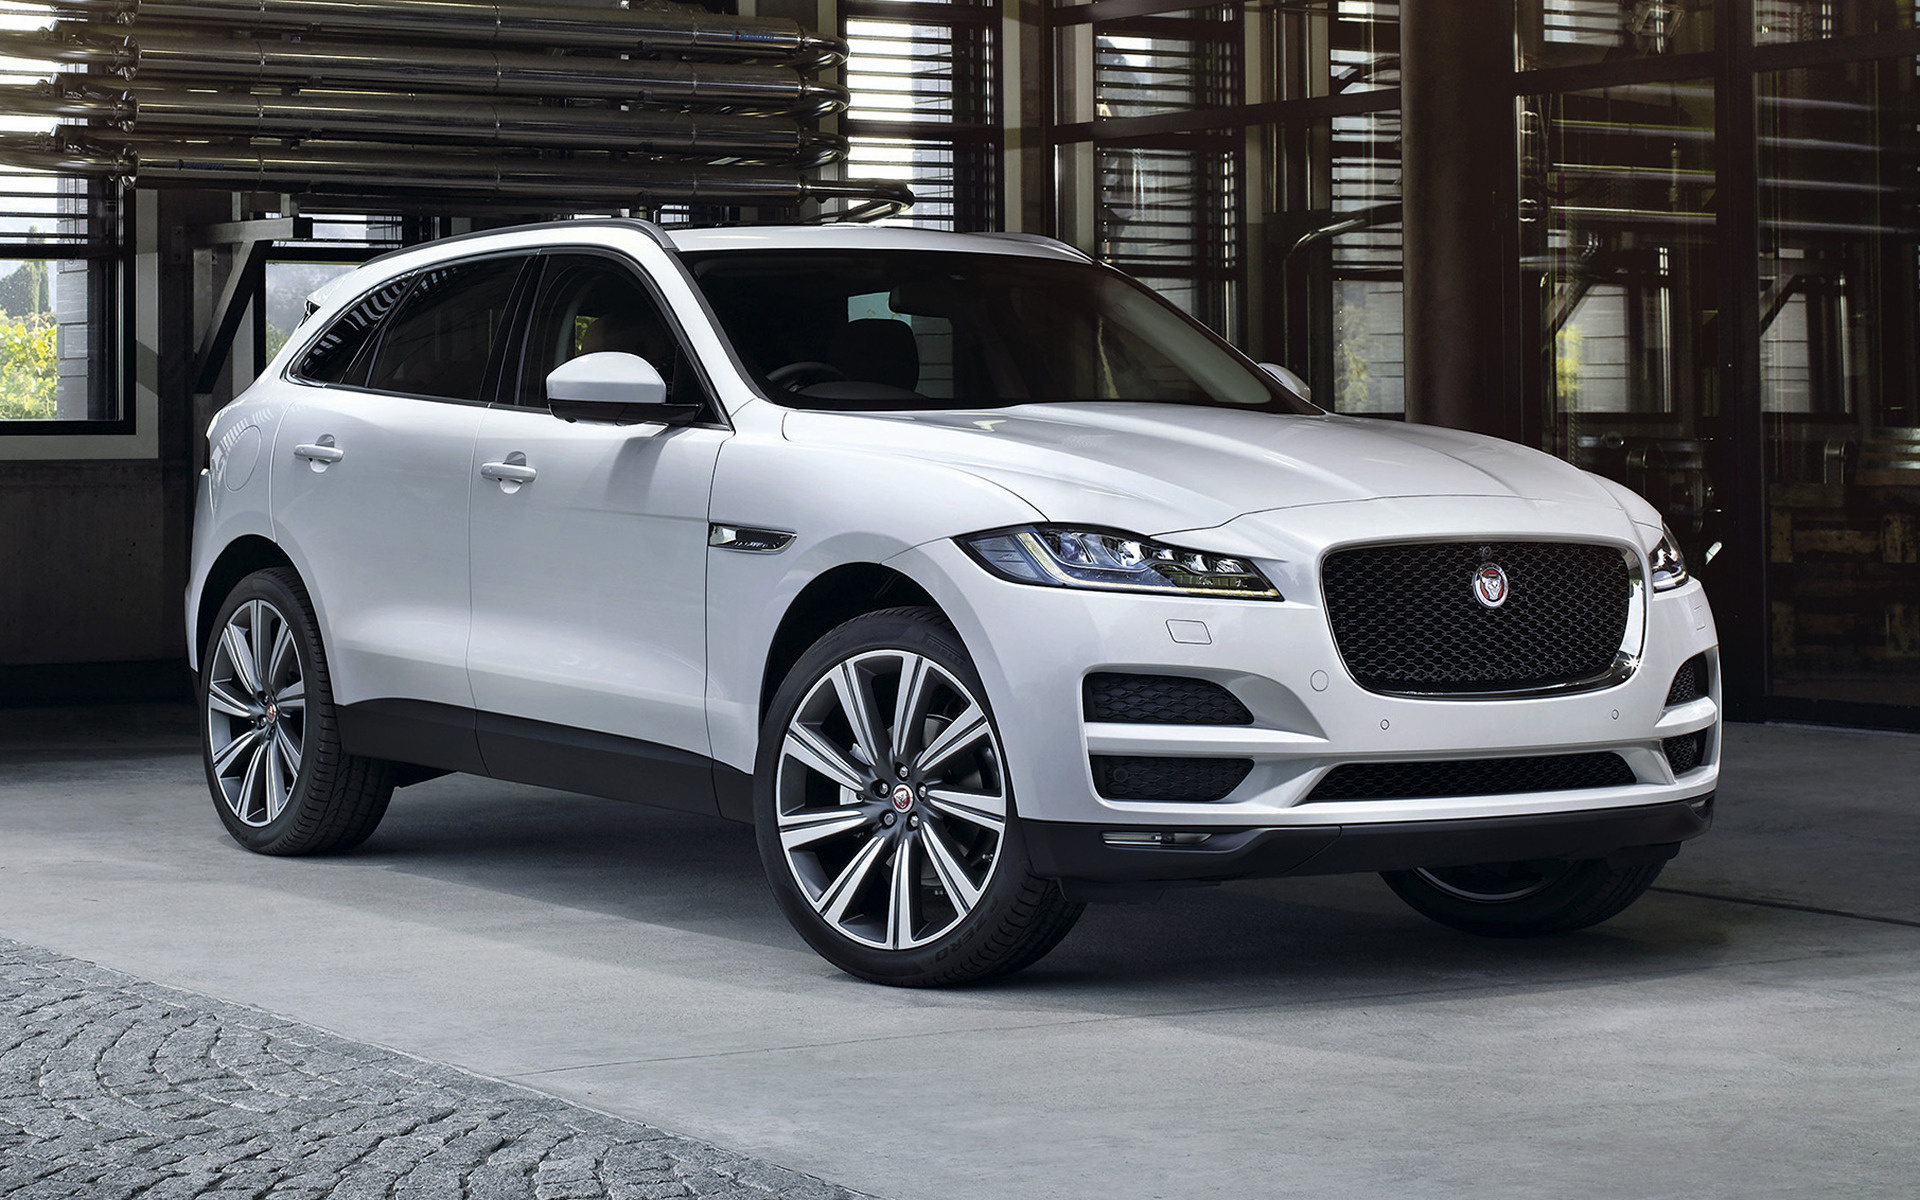 Jaguar F Pace Car Wallpaper